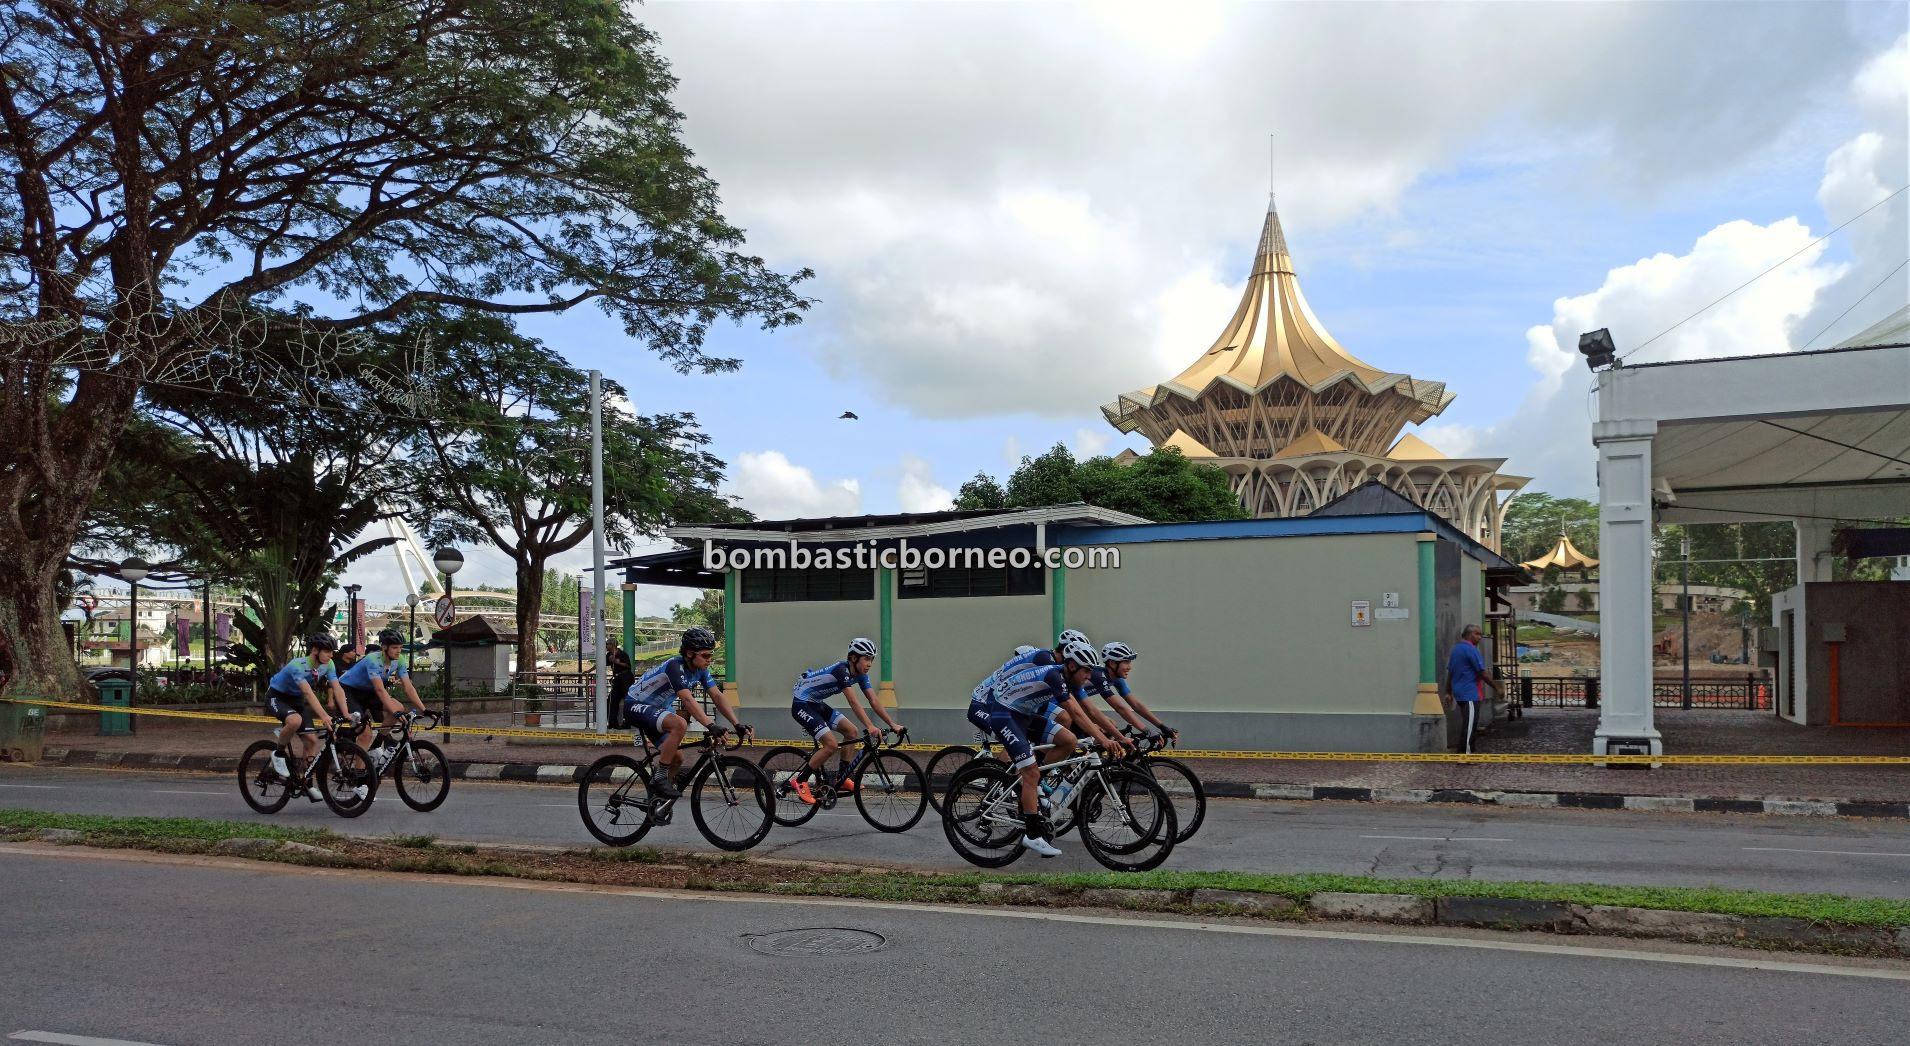 Petronas Le Tour De Langkawi, Cyclist, bicycle, championship, event, Borneo, tourist attraction, travel guide, 婆罗洲砂拉越, 古晋马来西亚, 骑自行车比赛